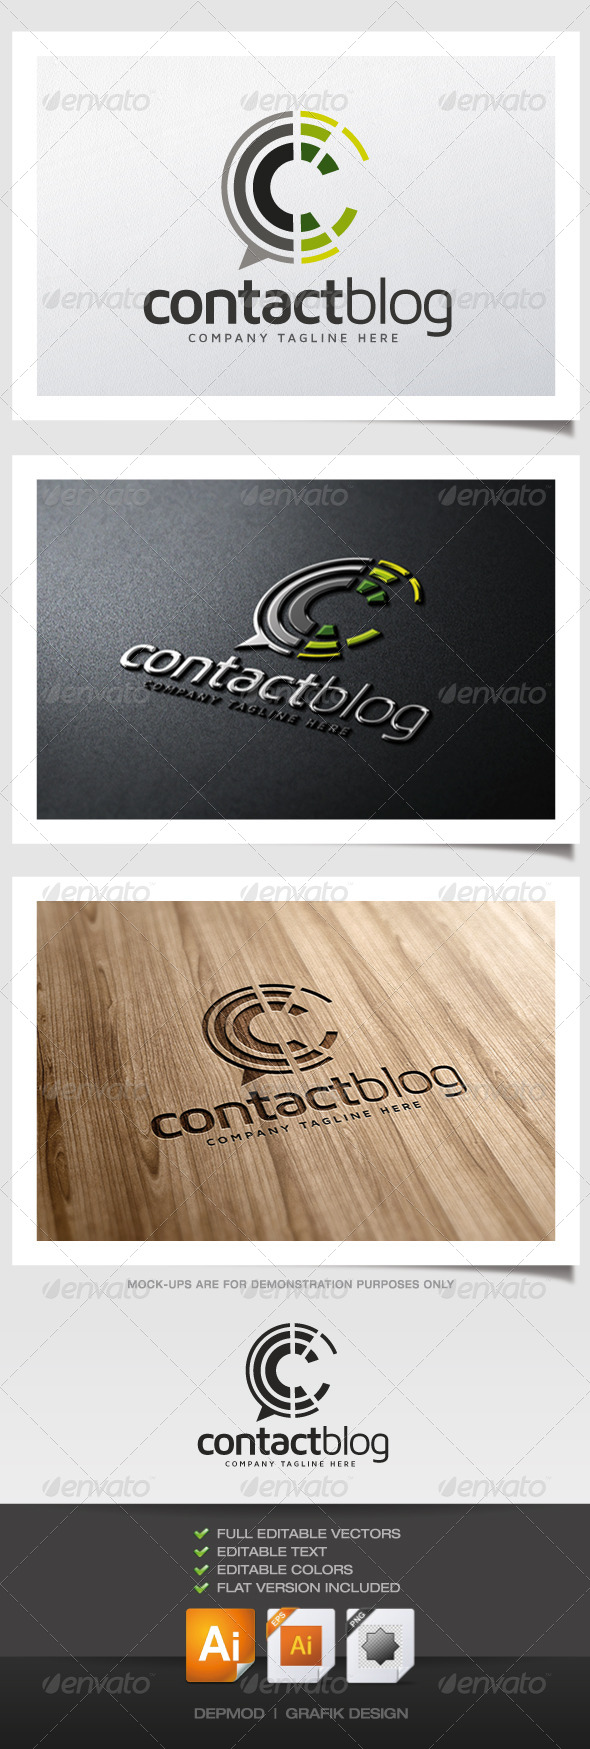 Contact Blog Logo - Abstract Logo Templates